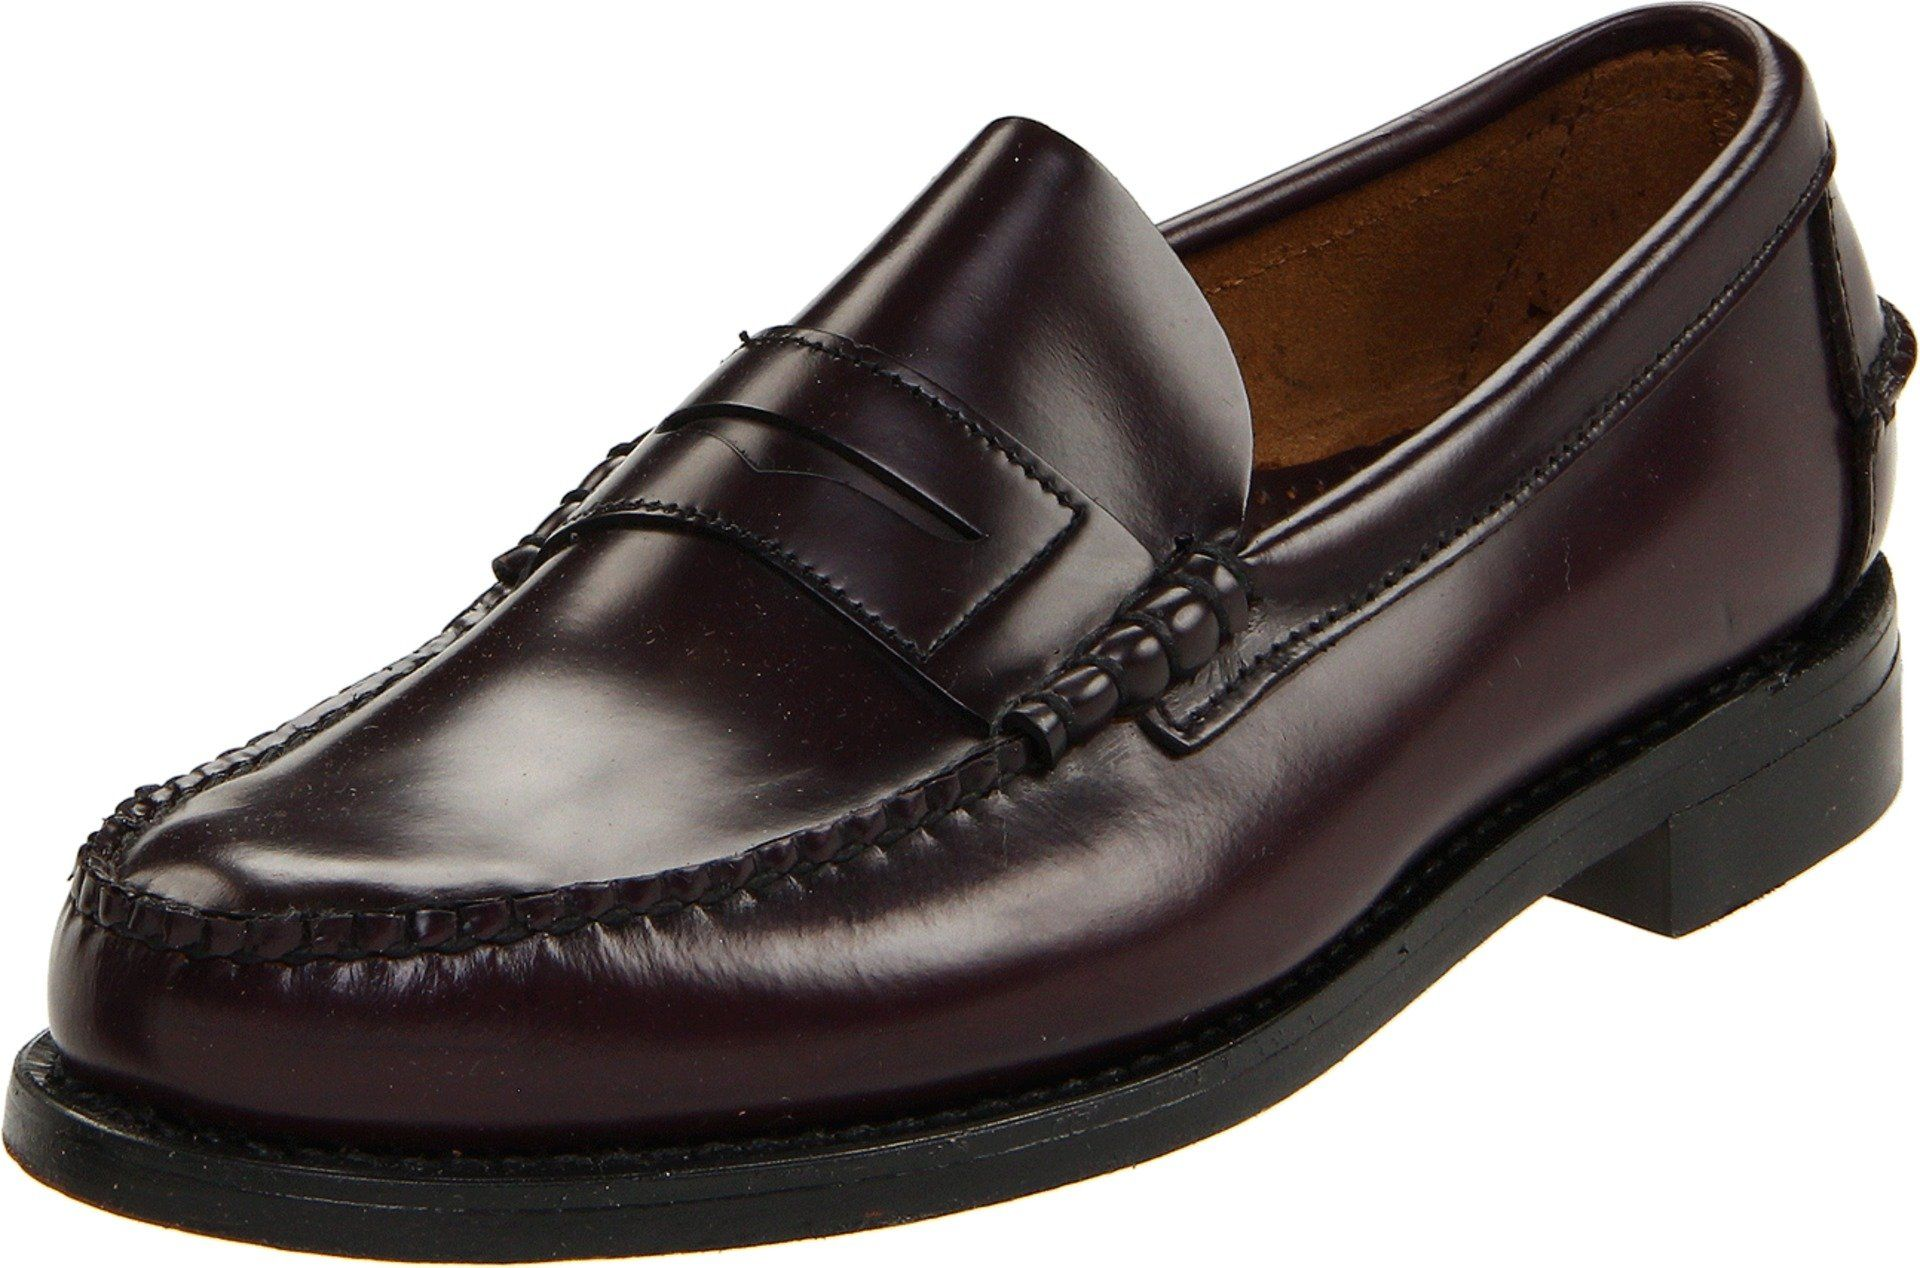 3aee6b18201b6 Amazon.com: Sebago Men's Classic Leather Loafer: Loafers Shoes ...